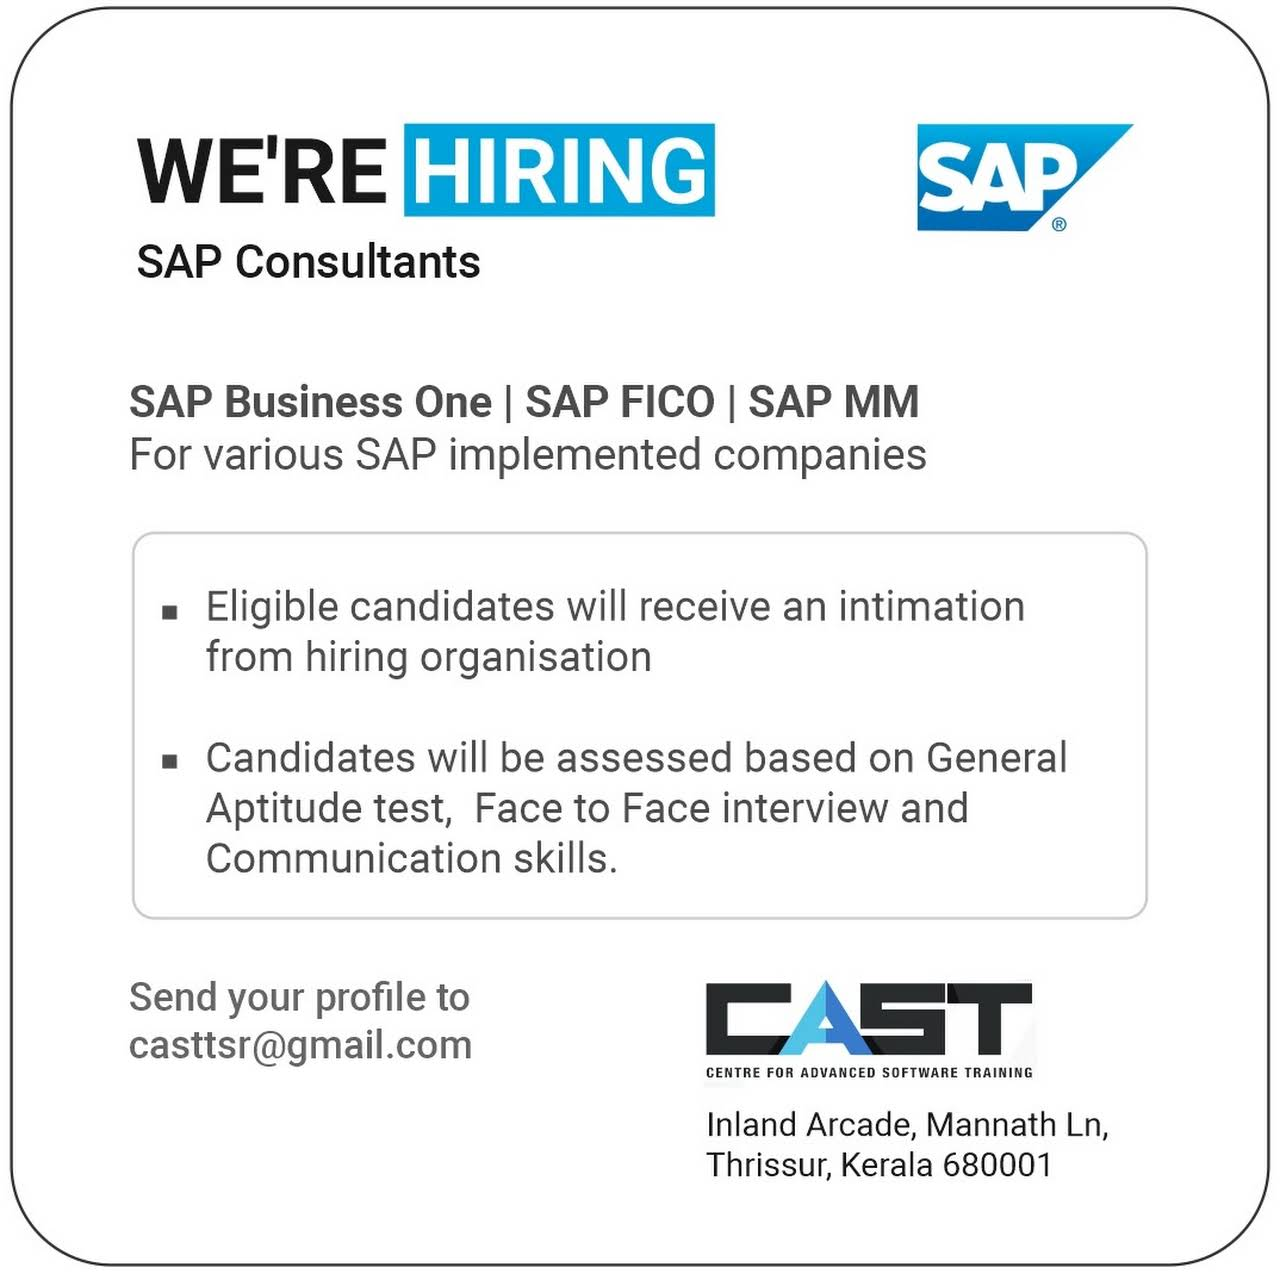 CAST - SAP TRAINING THRISSUR - Software Training Institute